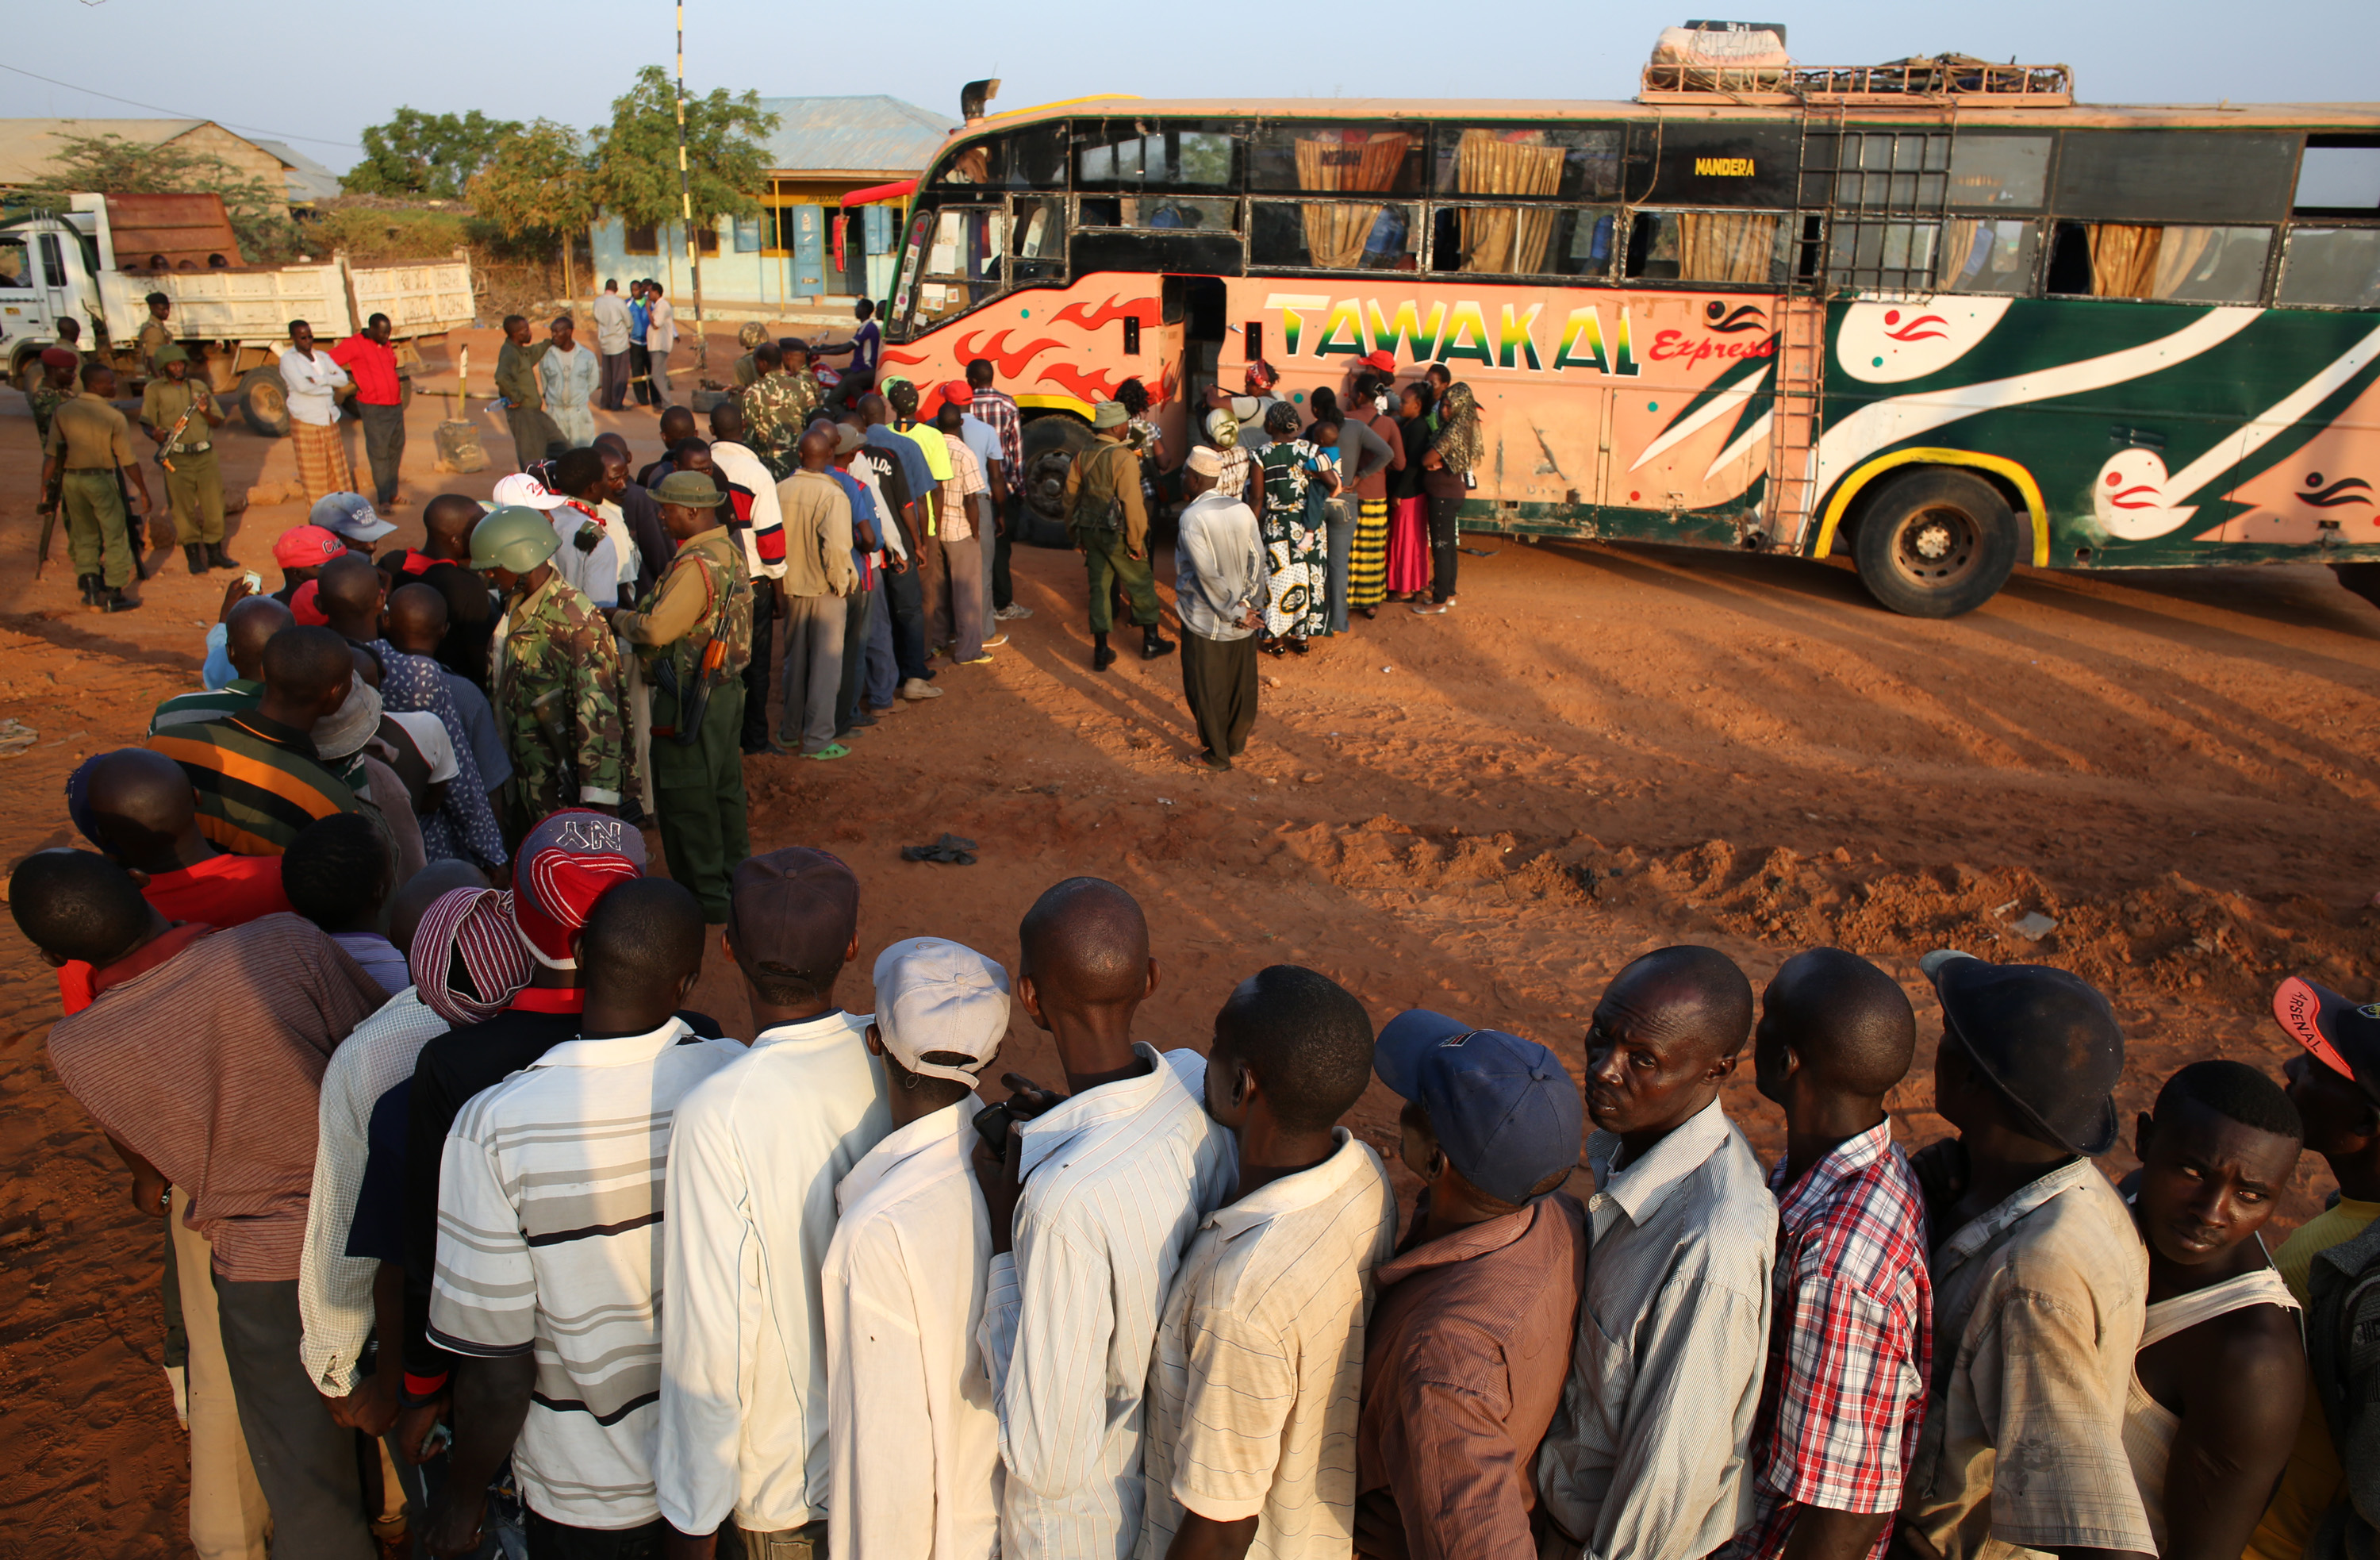 Kenyan Bus Hero Says Won't Change Route After Attack   Voice